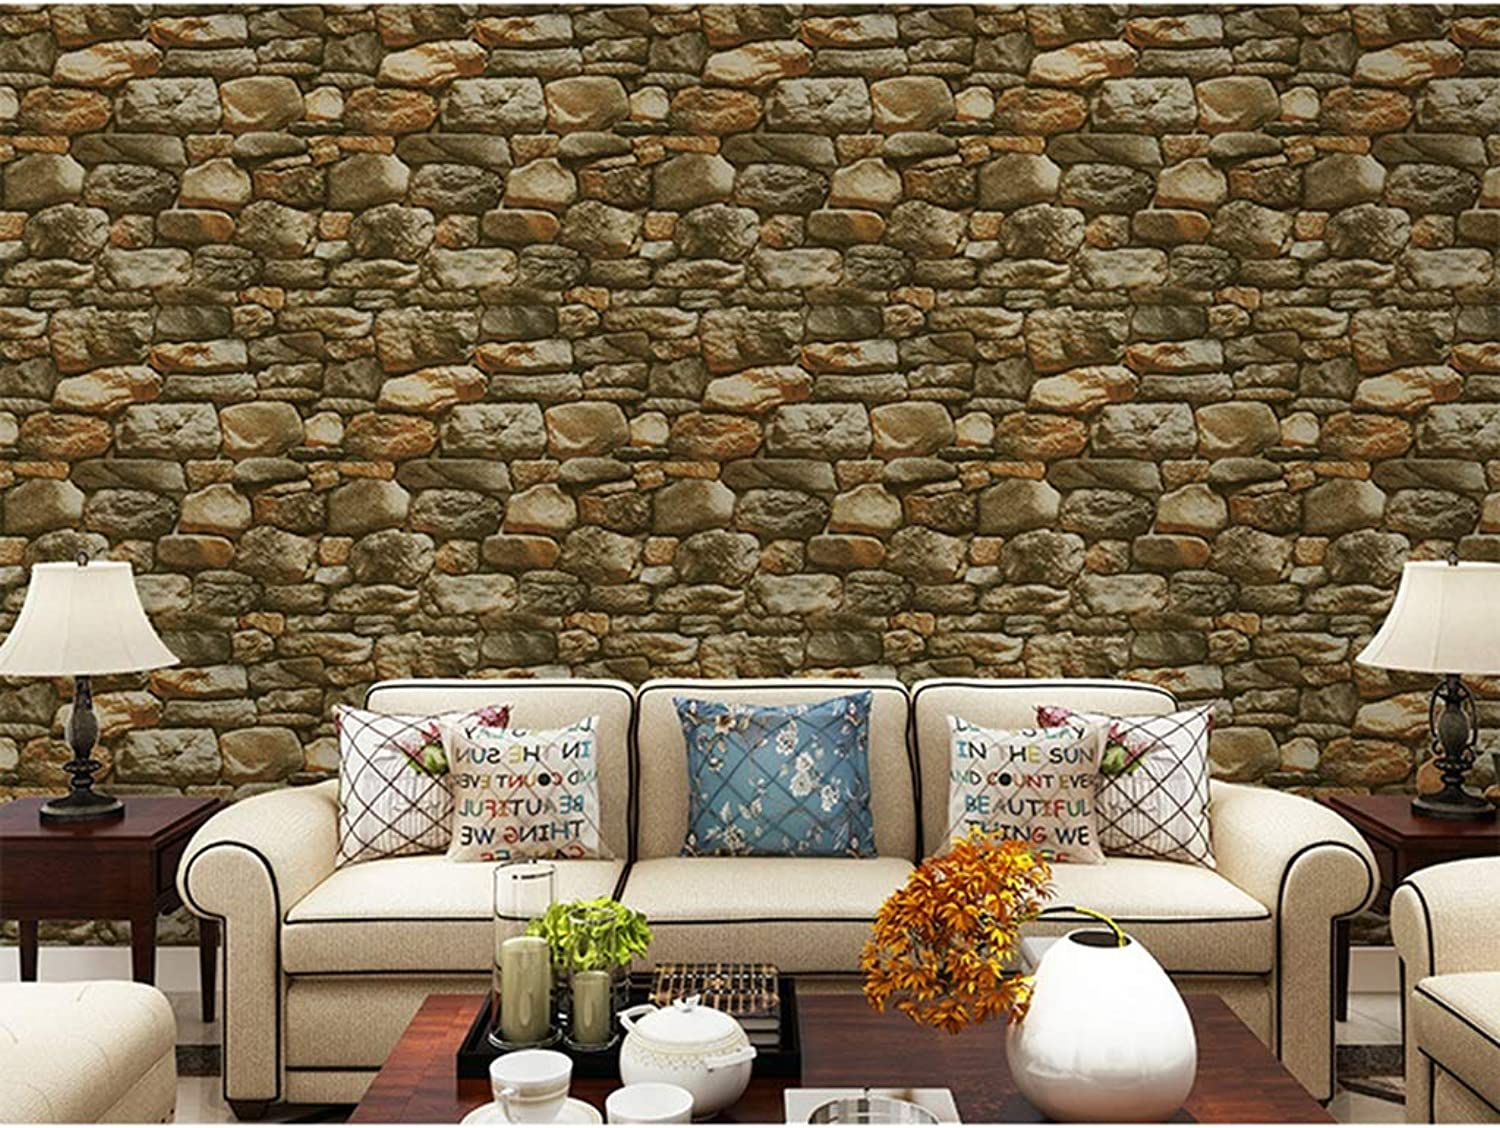 AMHD Wallpaper Personality Vintage Simulation Stone Wallpaper 3D Effect Waterproof PVC Wall Decoration Suitable for Bars Cafes Restaurants LMD011 (color   C, Size   393in20.8in)